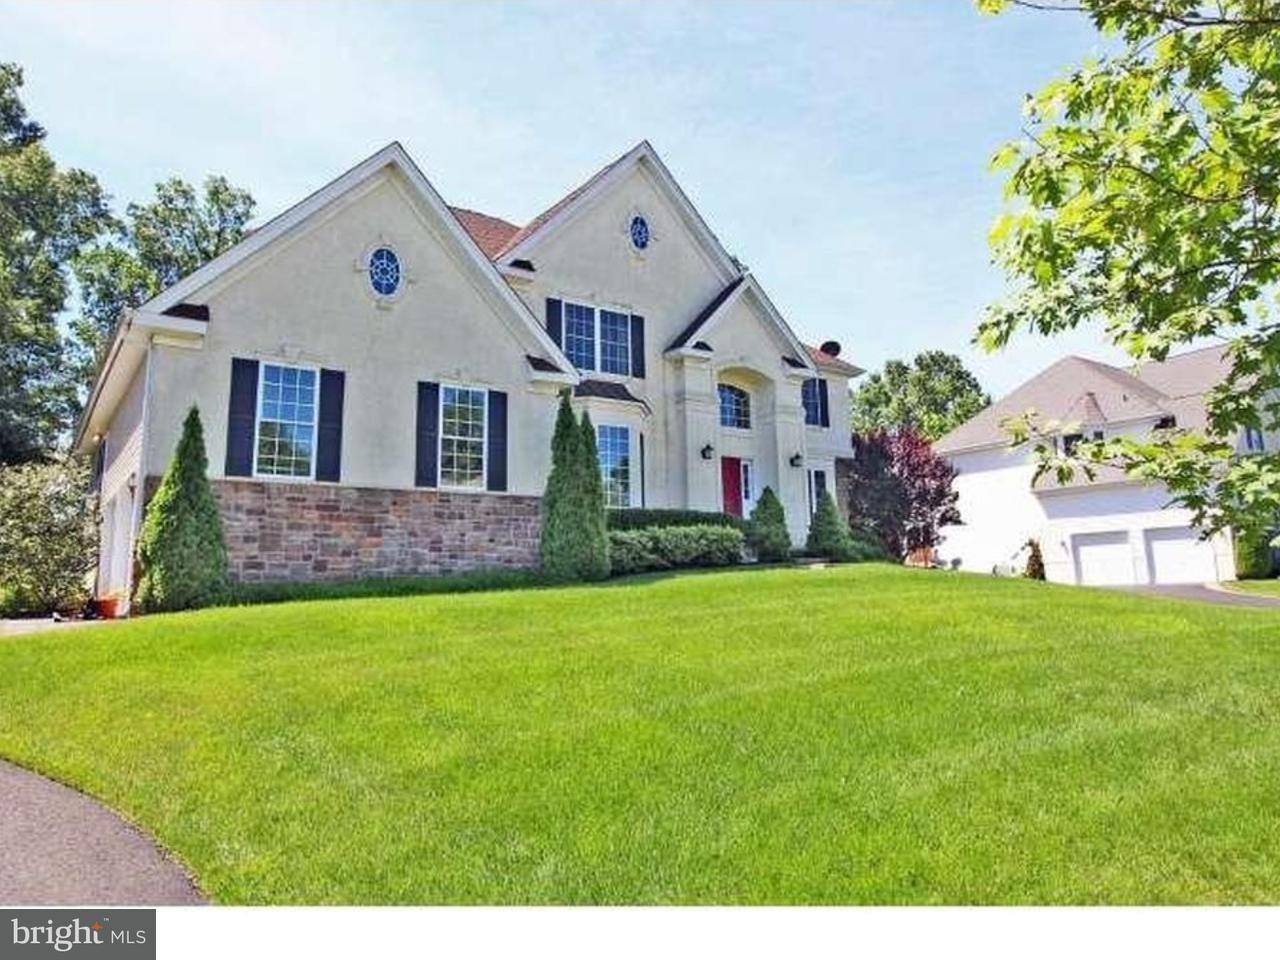 Townhouse for Rent at 10 FOXCROFT WAY Mount Laurel, New Jersey 08054 United States